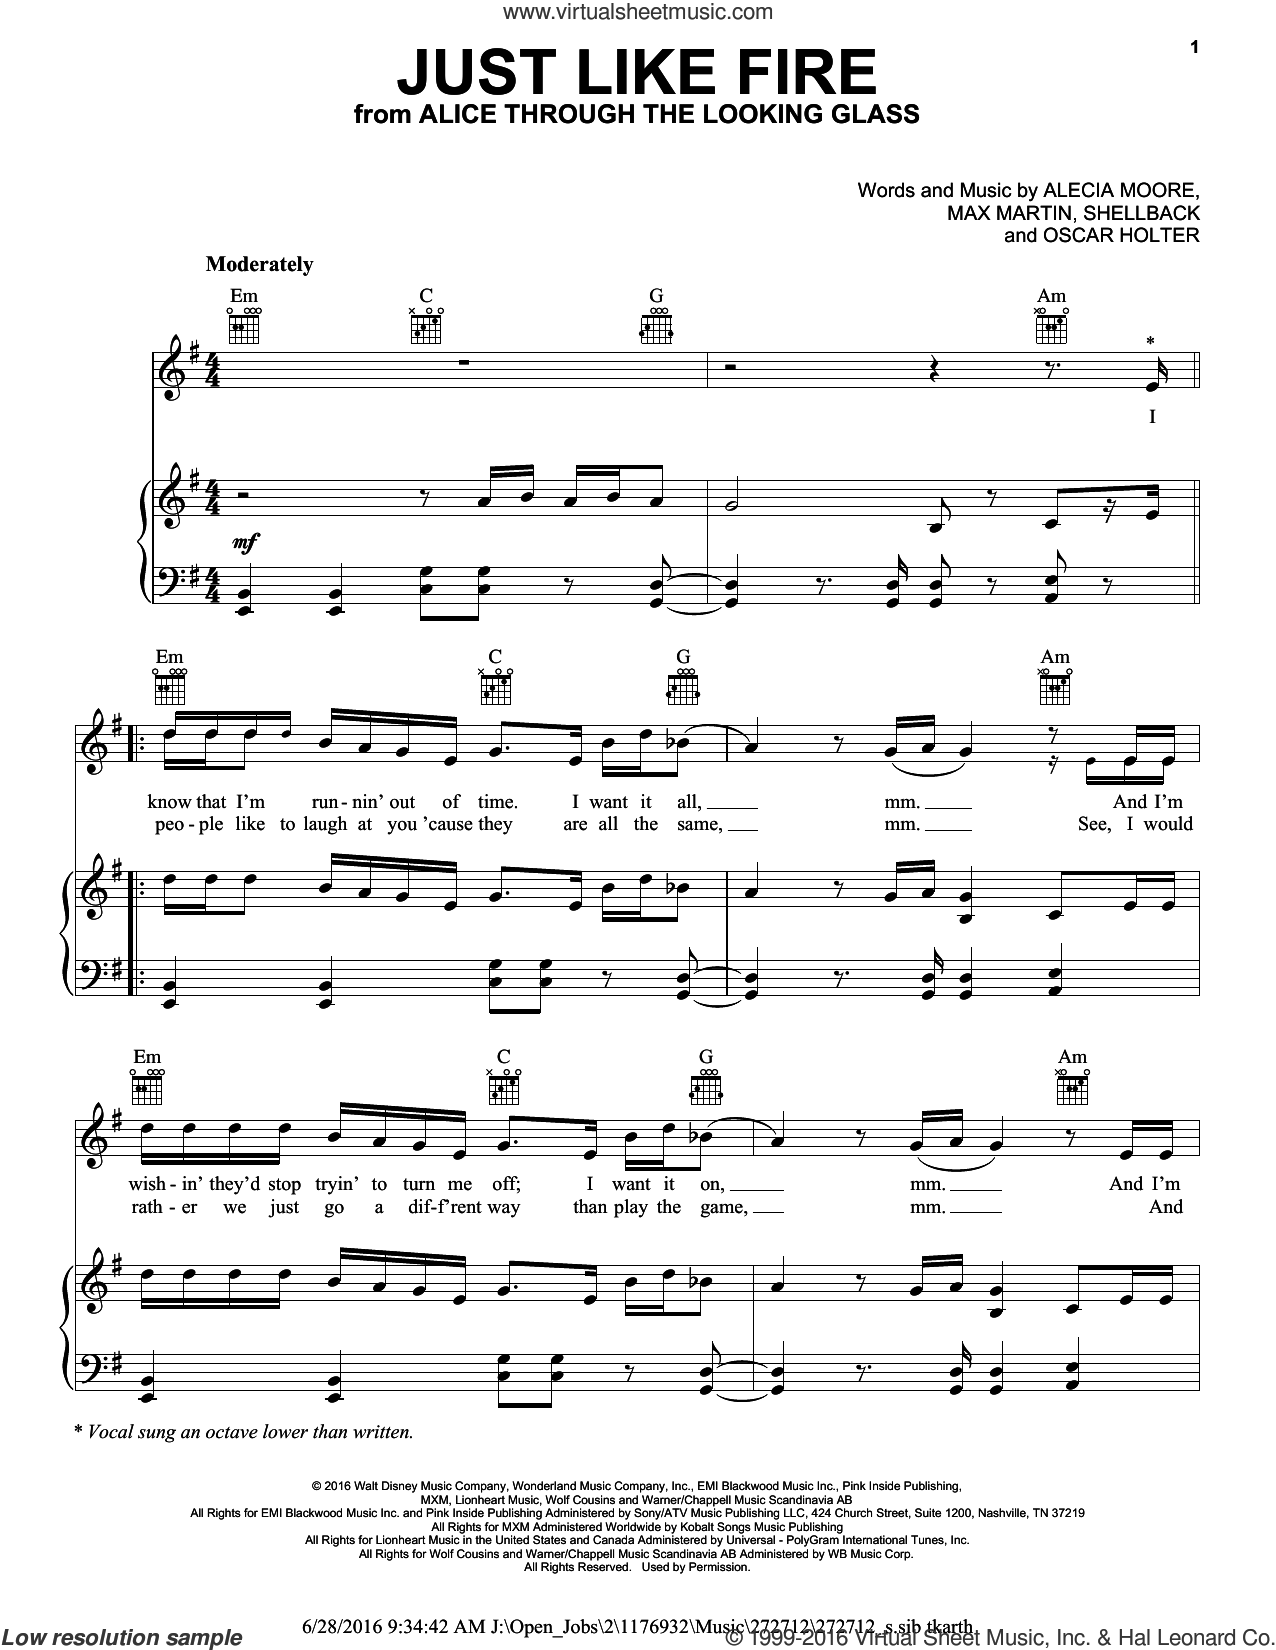 Just Like Fire sheet music for voice, piano or guitar , Alecia Moore, Johan Schuster, Max Martin, Oscar Holter and Shellback, intermediate skill level